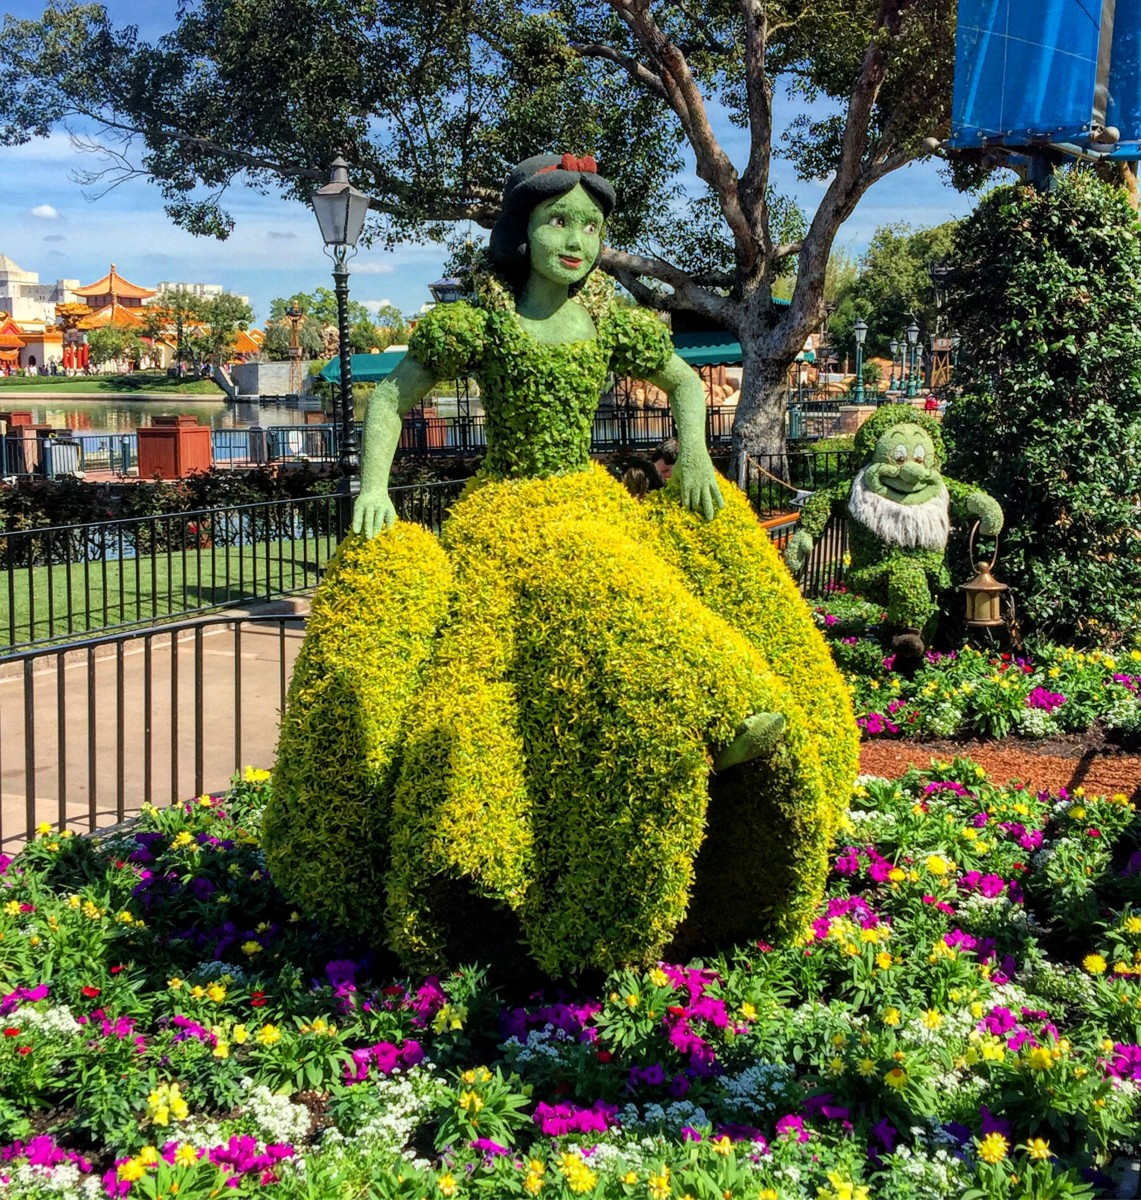 Epcot Is Getting Ready For The 2017 Flower And Garden Fest Take A Look Below The Main Street